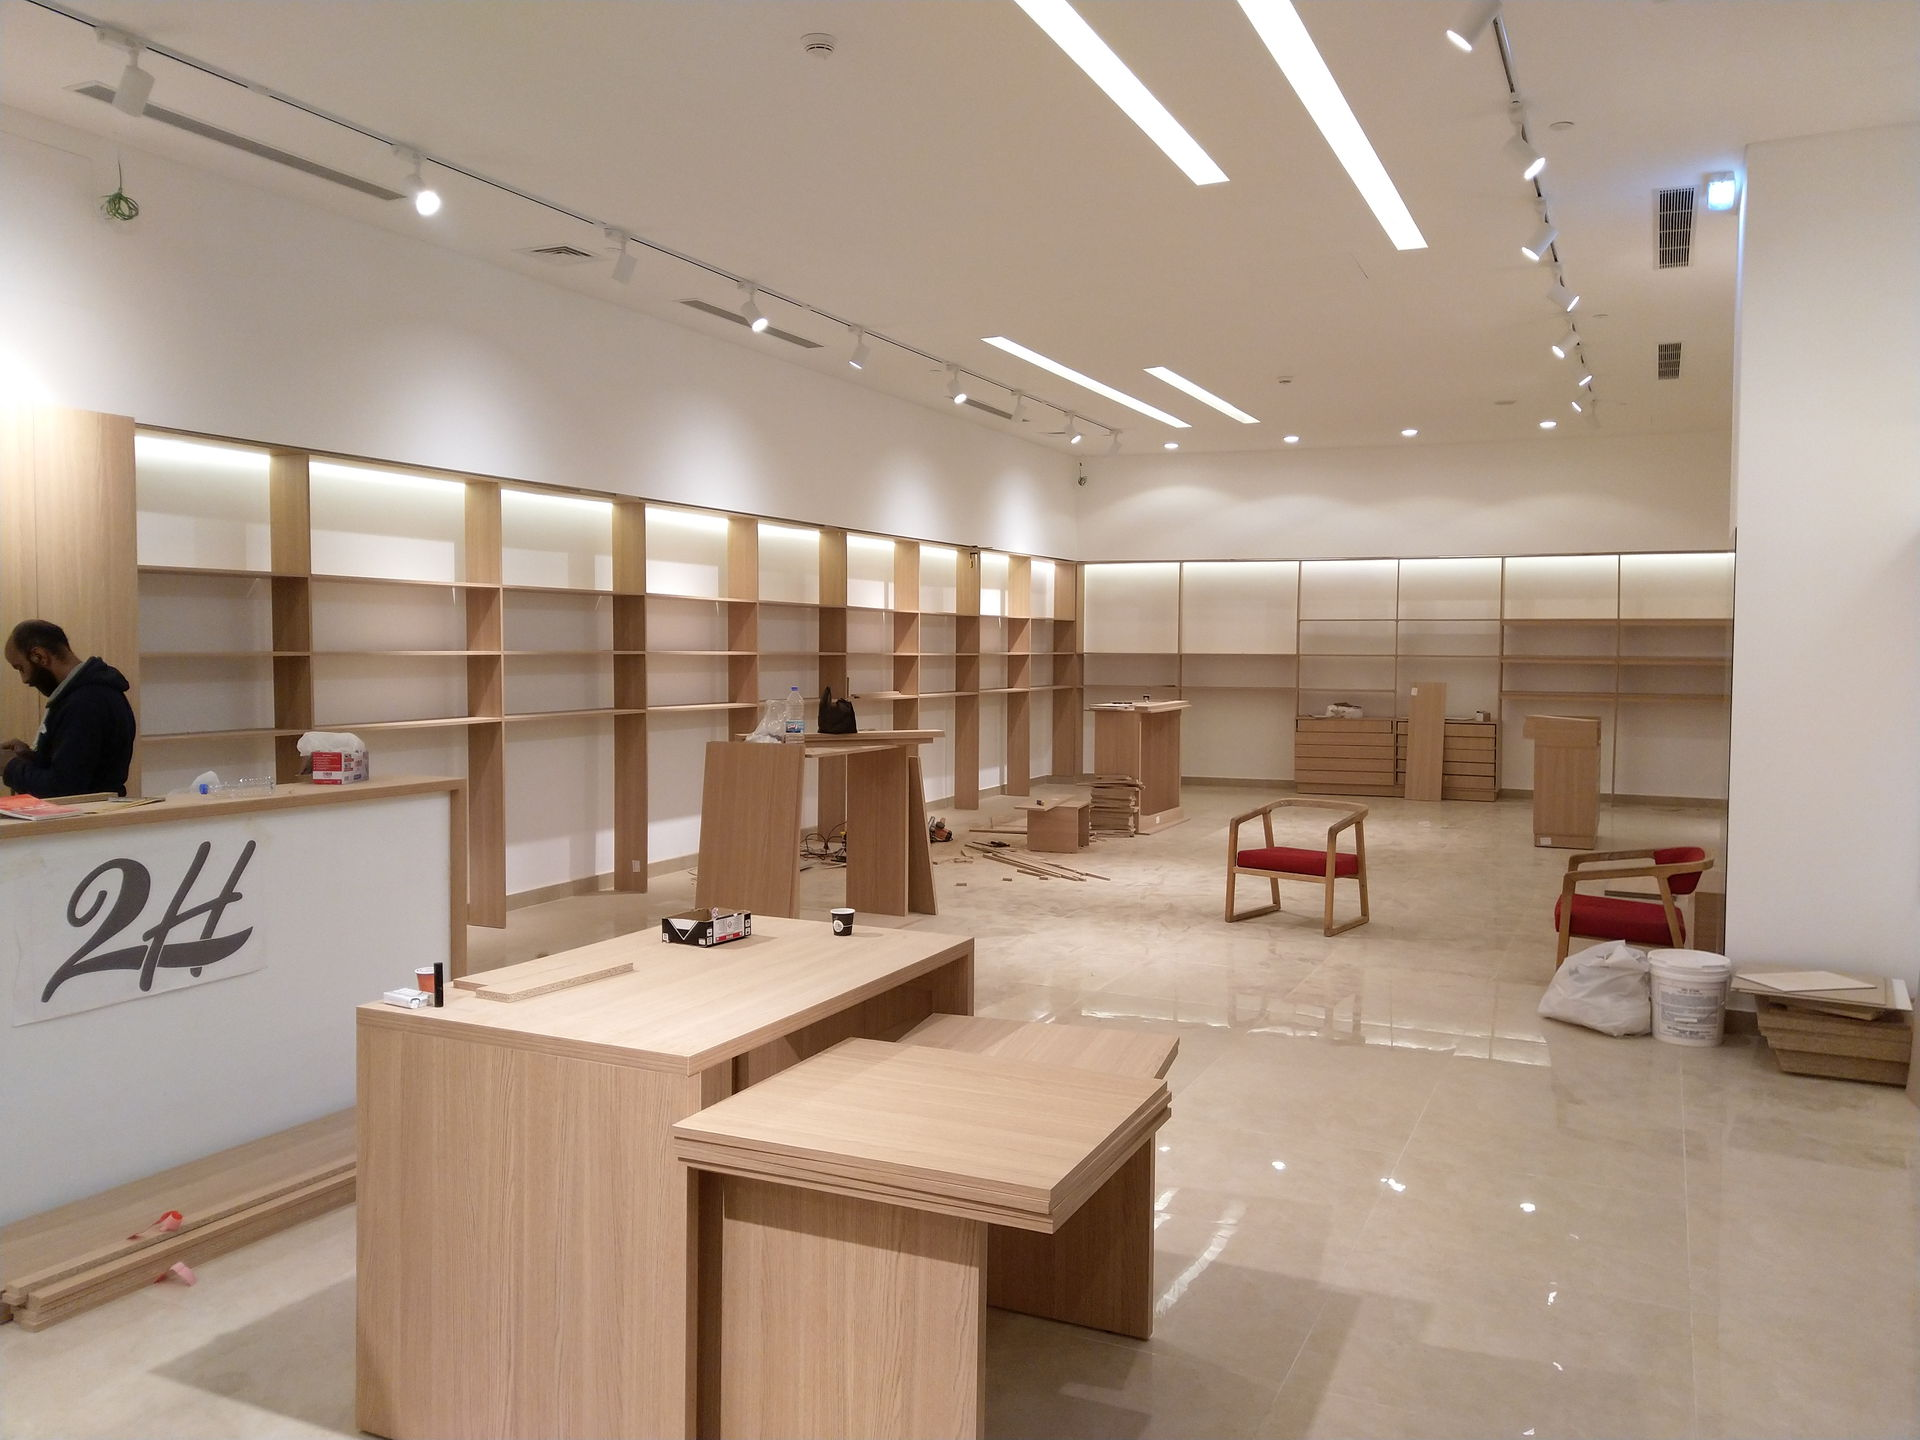 2H Stores - Centro Mall - Interior Design Administration